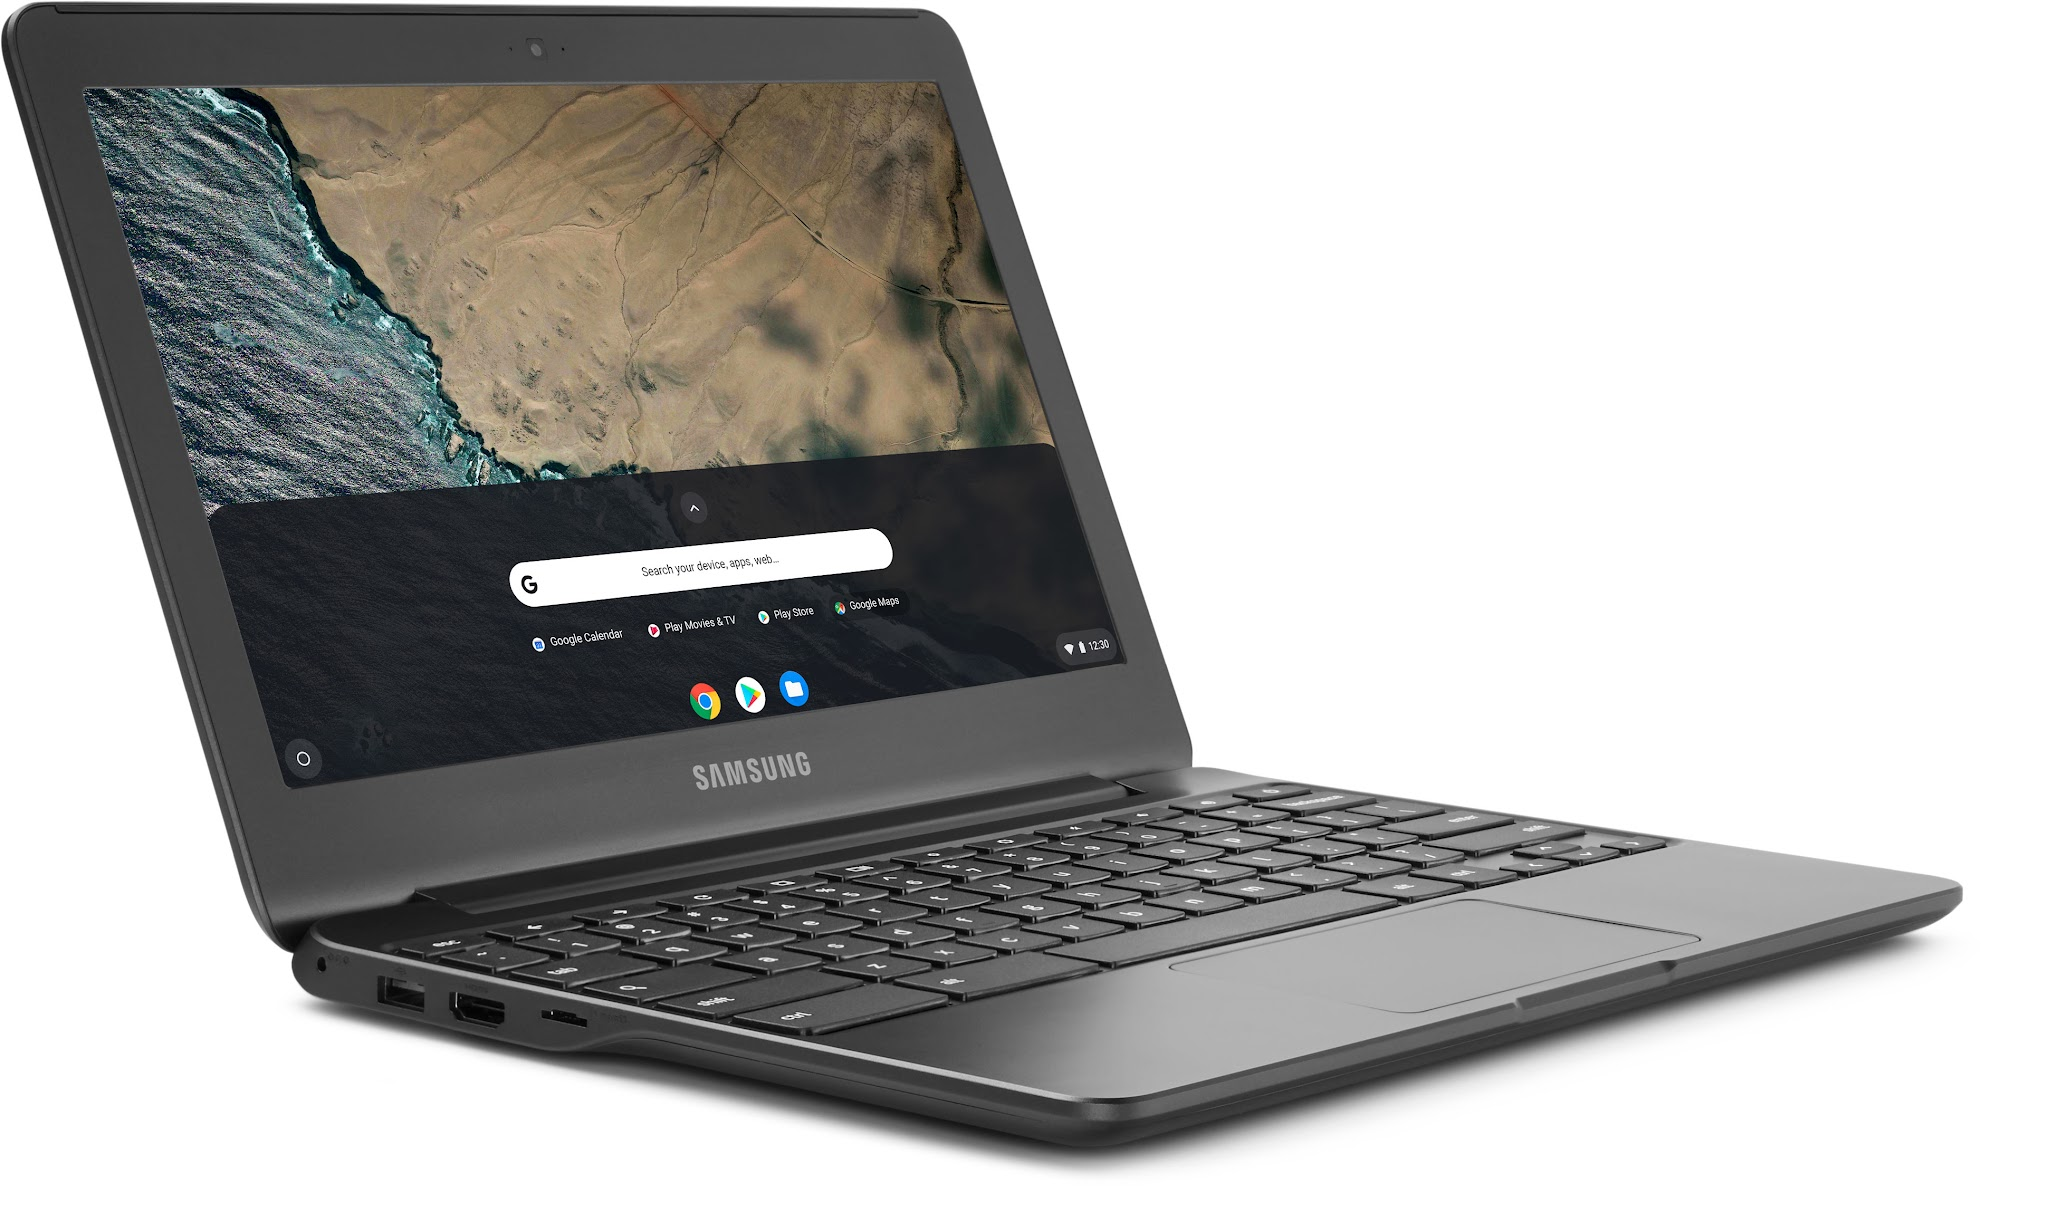 Samsung Chromebook 3 - photo 2